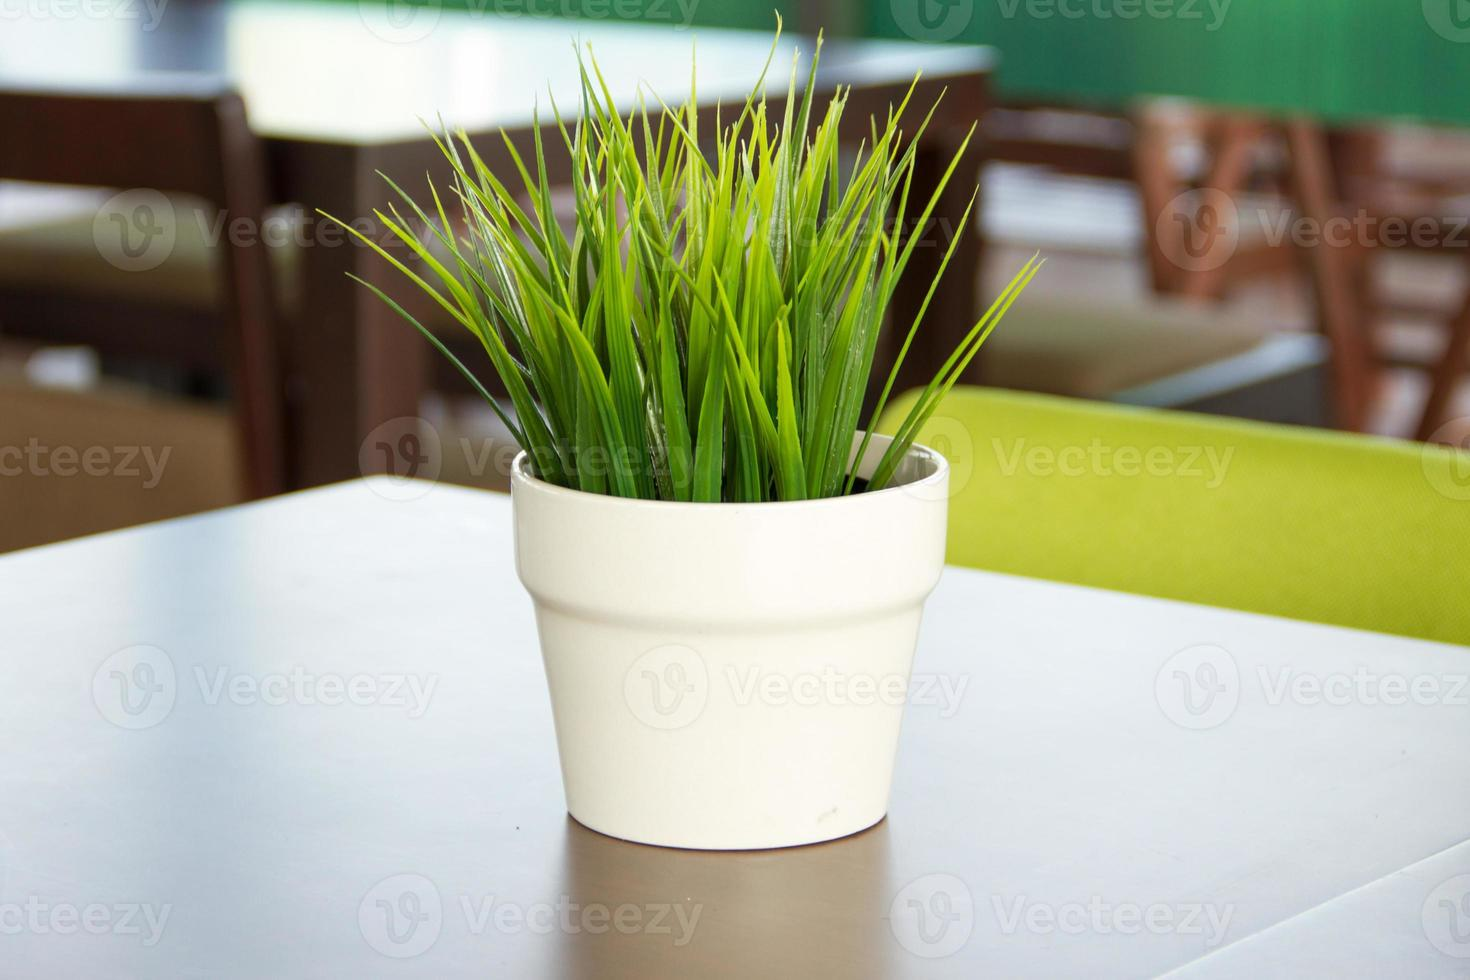 Potted grass put on the table photo